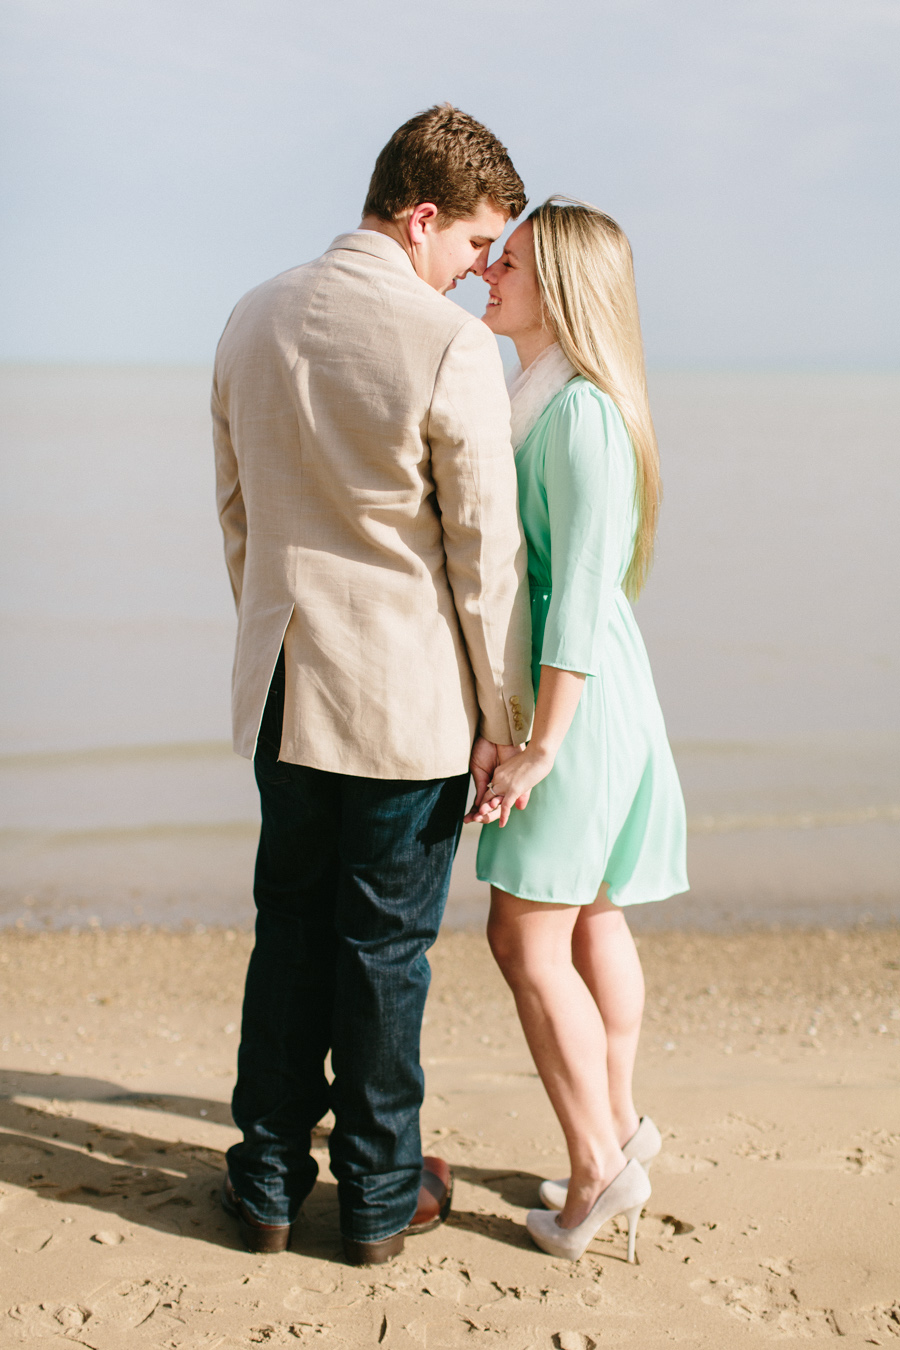 Micaela-Greg-Engagements-Low-Res-51